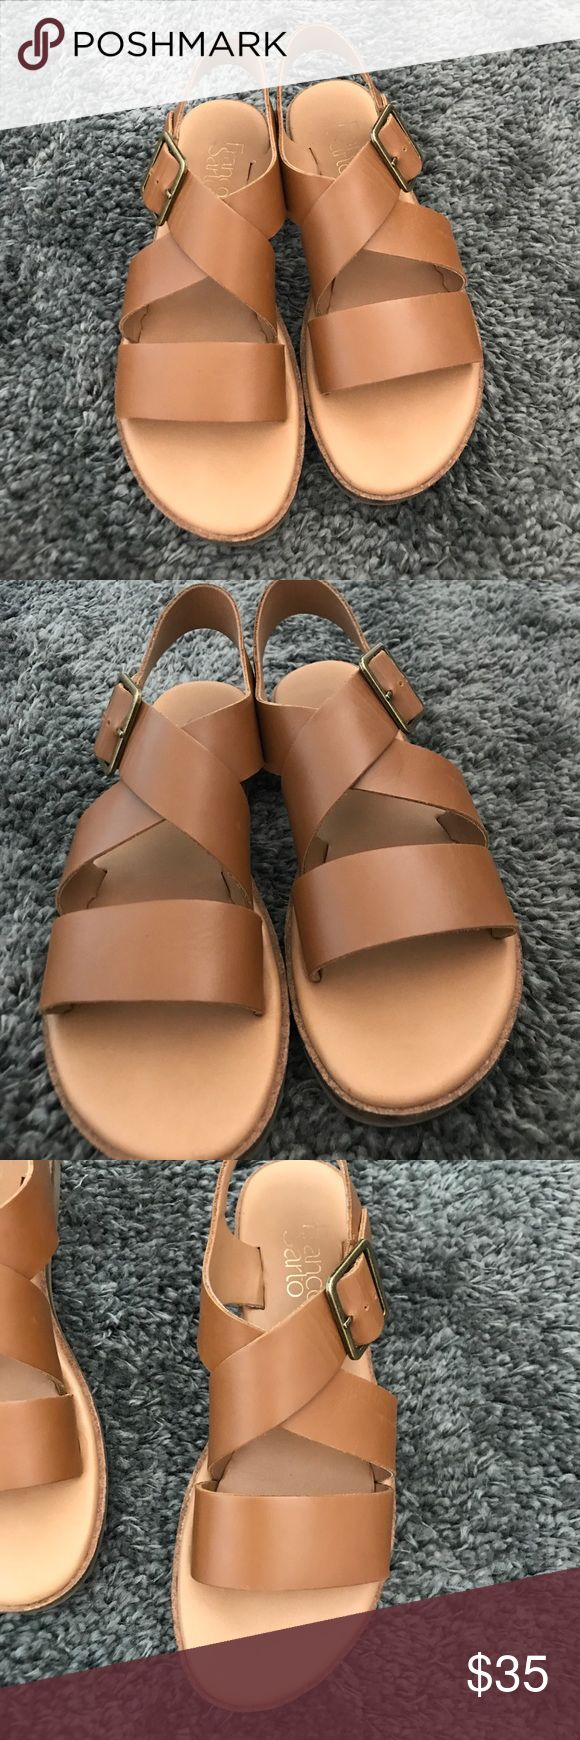 Franco sarto sandals These are super comfy! well padded great for al day wear. Barely worn. Selling because they're a little too wide for me (extremely narrow foot). Great summer staple! Franco Sarto Shoes Sandals